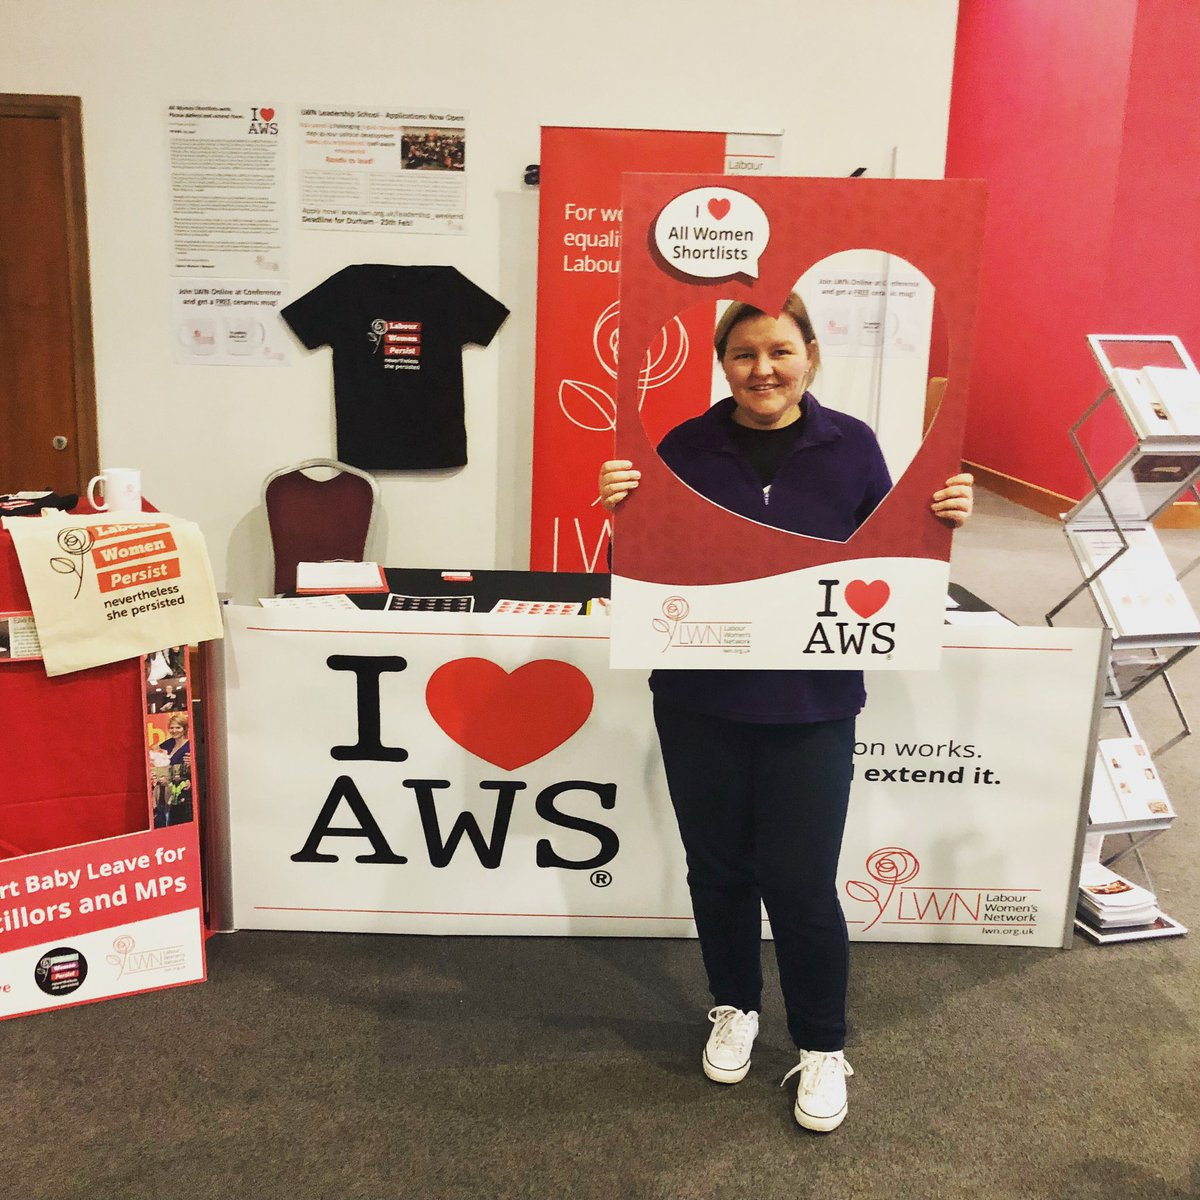 National Women's Conference, we are ready for you! See you in Telford? #labwomen19 Join us tomorrow 2-3pm in the Coldport Room to #SlayThePatriachyCLPbyCLP<br>http://pic.twitter.com/A476XjBpyu